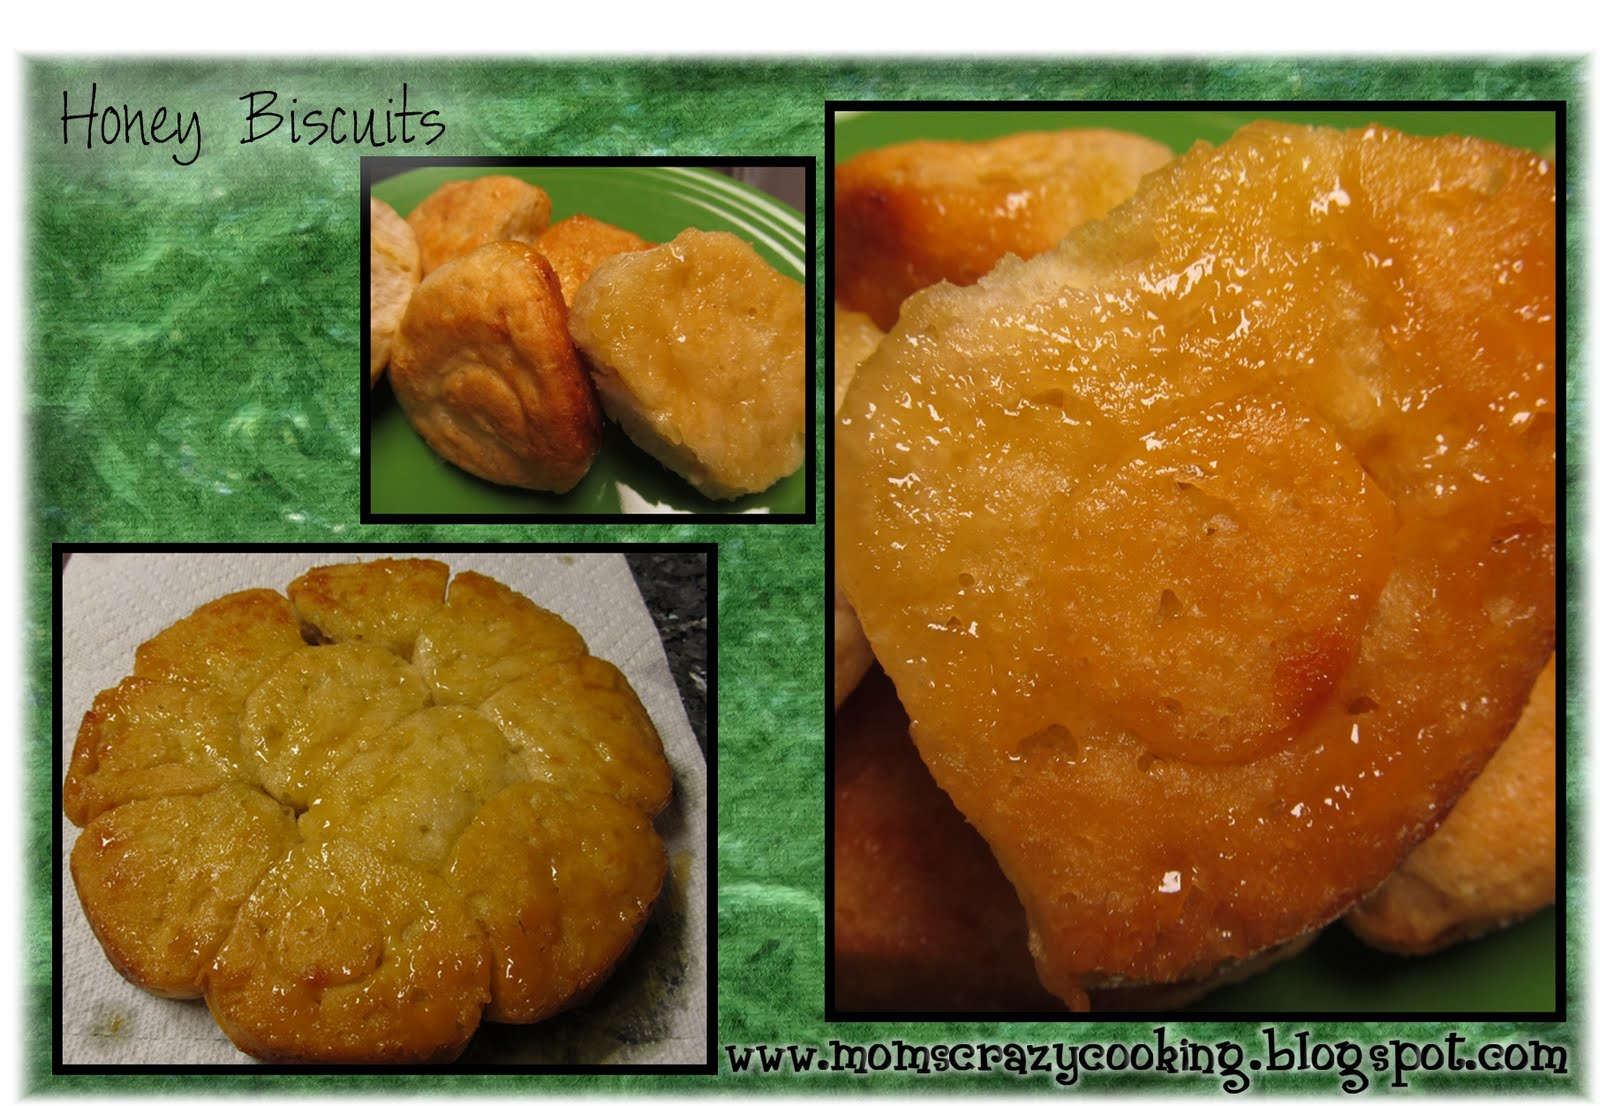 ... CRAZY COOKING: THIS WEEK'S CRAVINGS #46 (HONEY) and Honey Biscuits